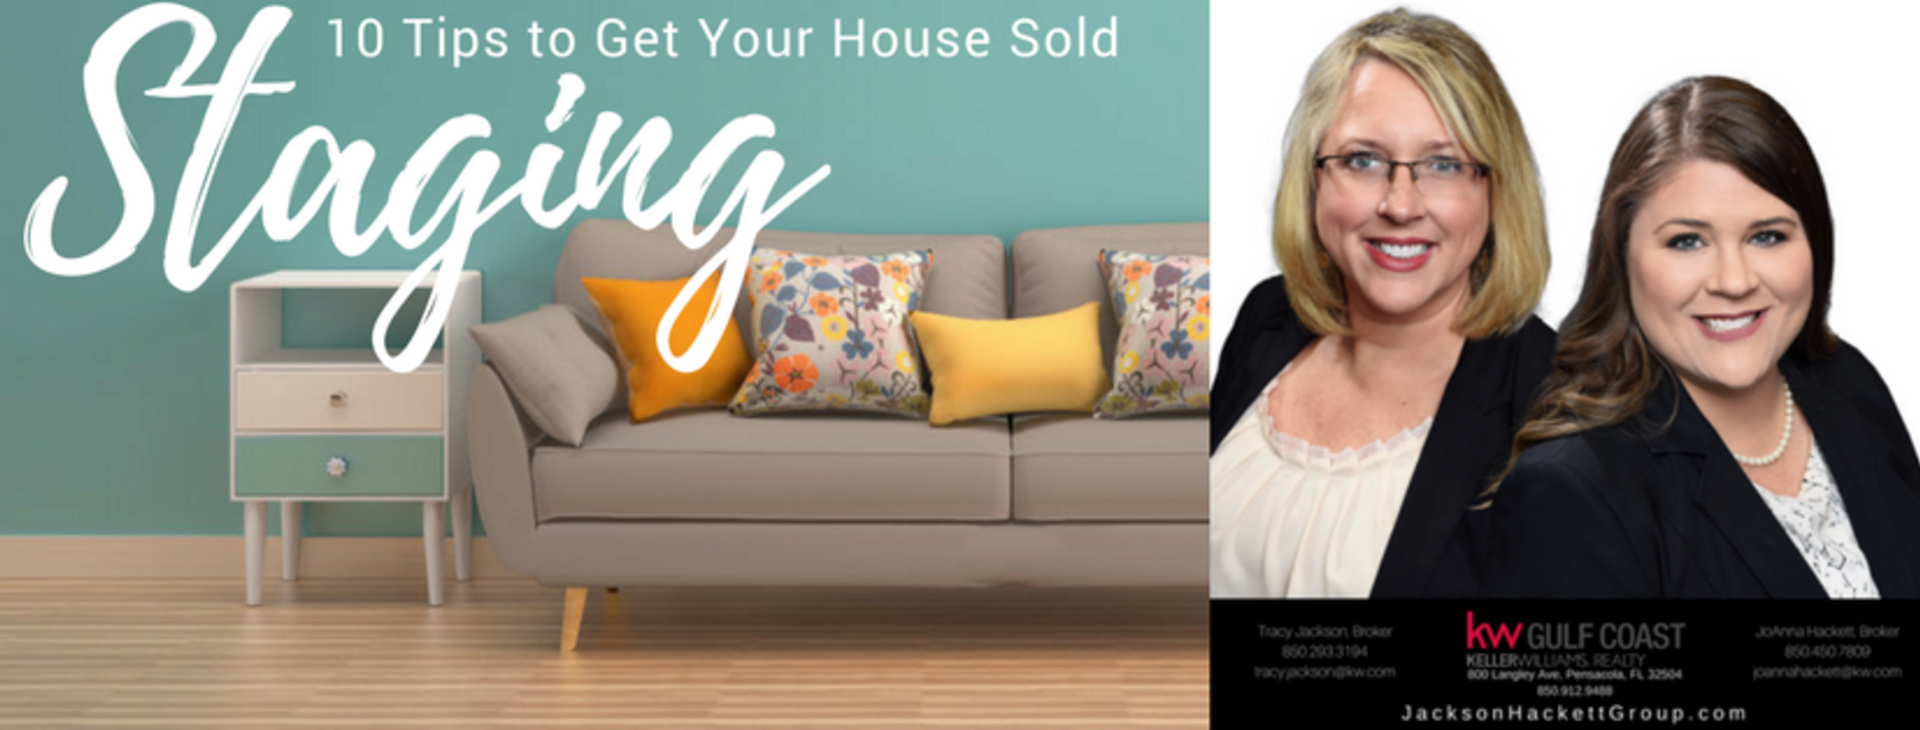 10 Staging Tips To Get Your House Sold